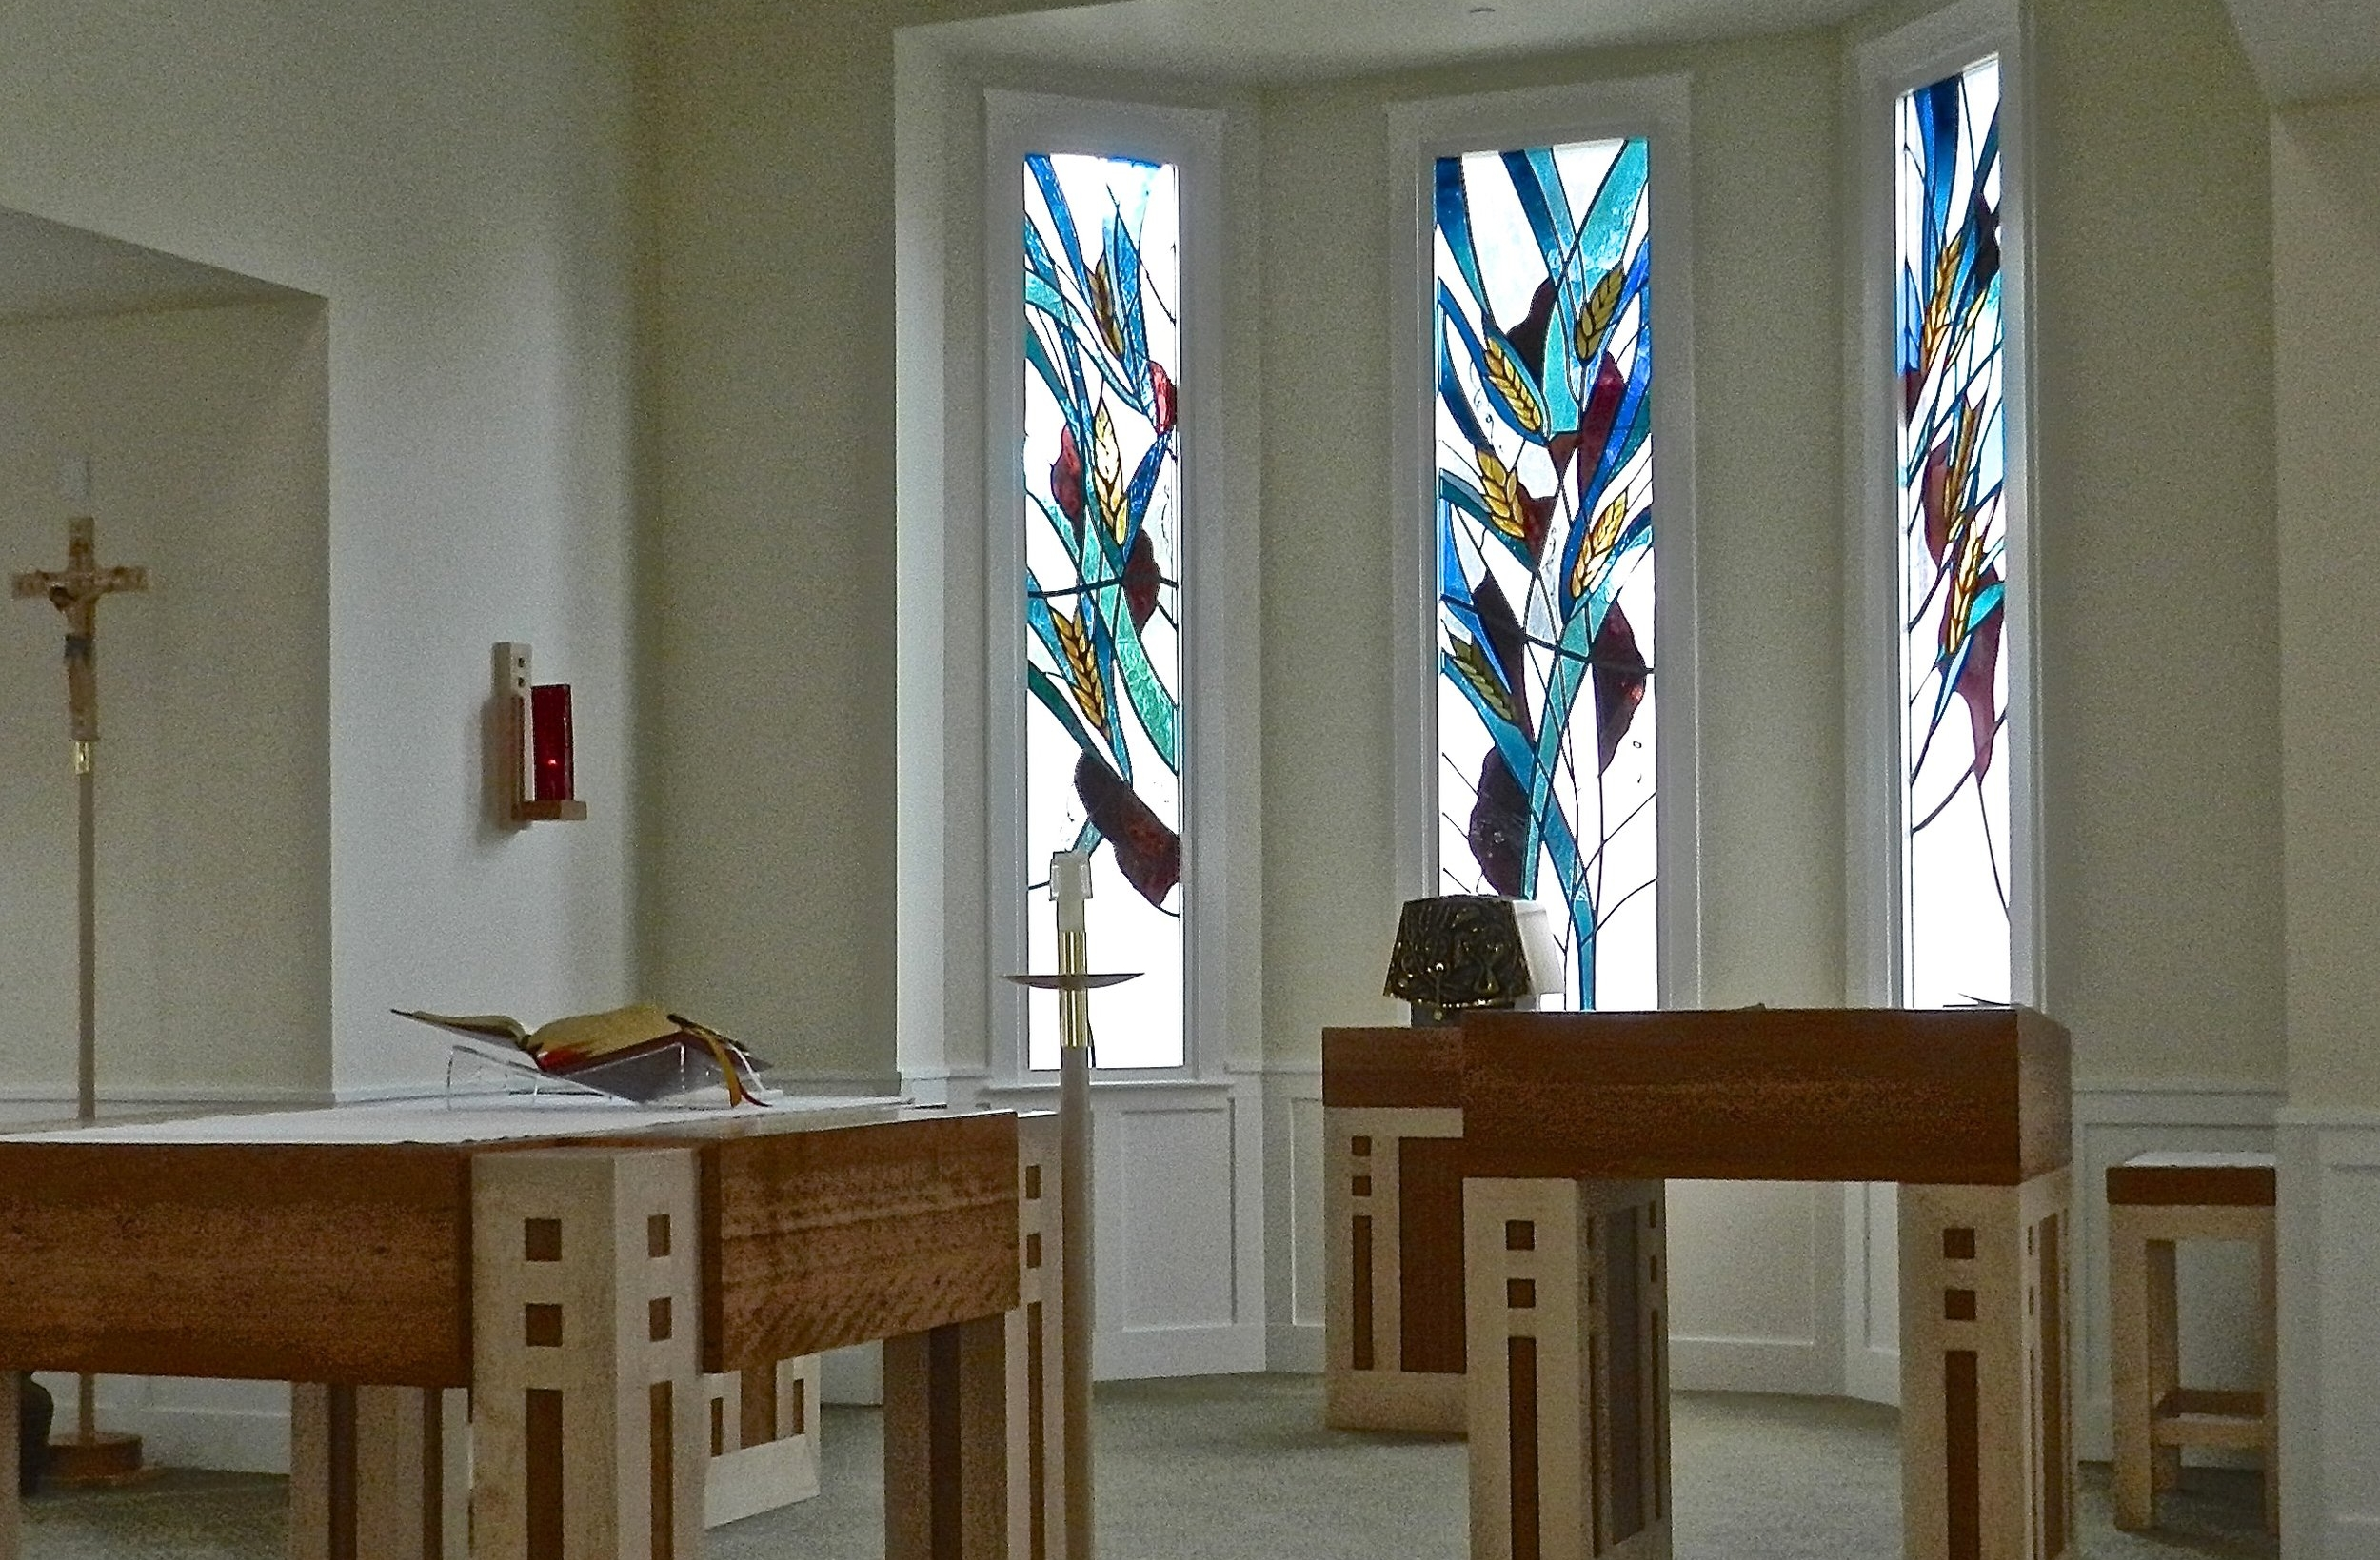 Church Art Glass - A church's inherent love and spirit shines ever more brightly through the brilliance of stained and cut glass and iconic images.